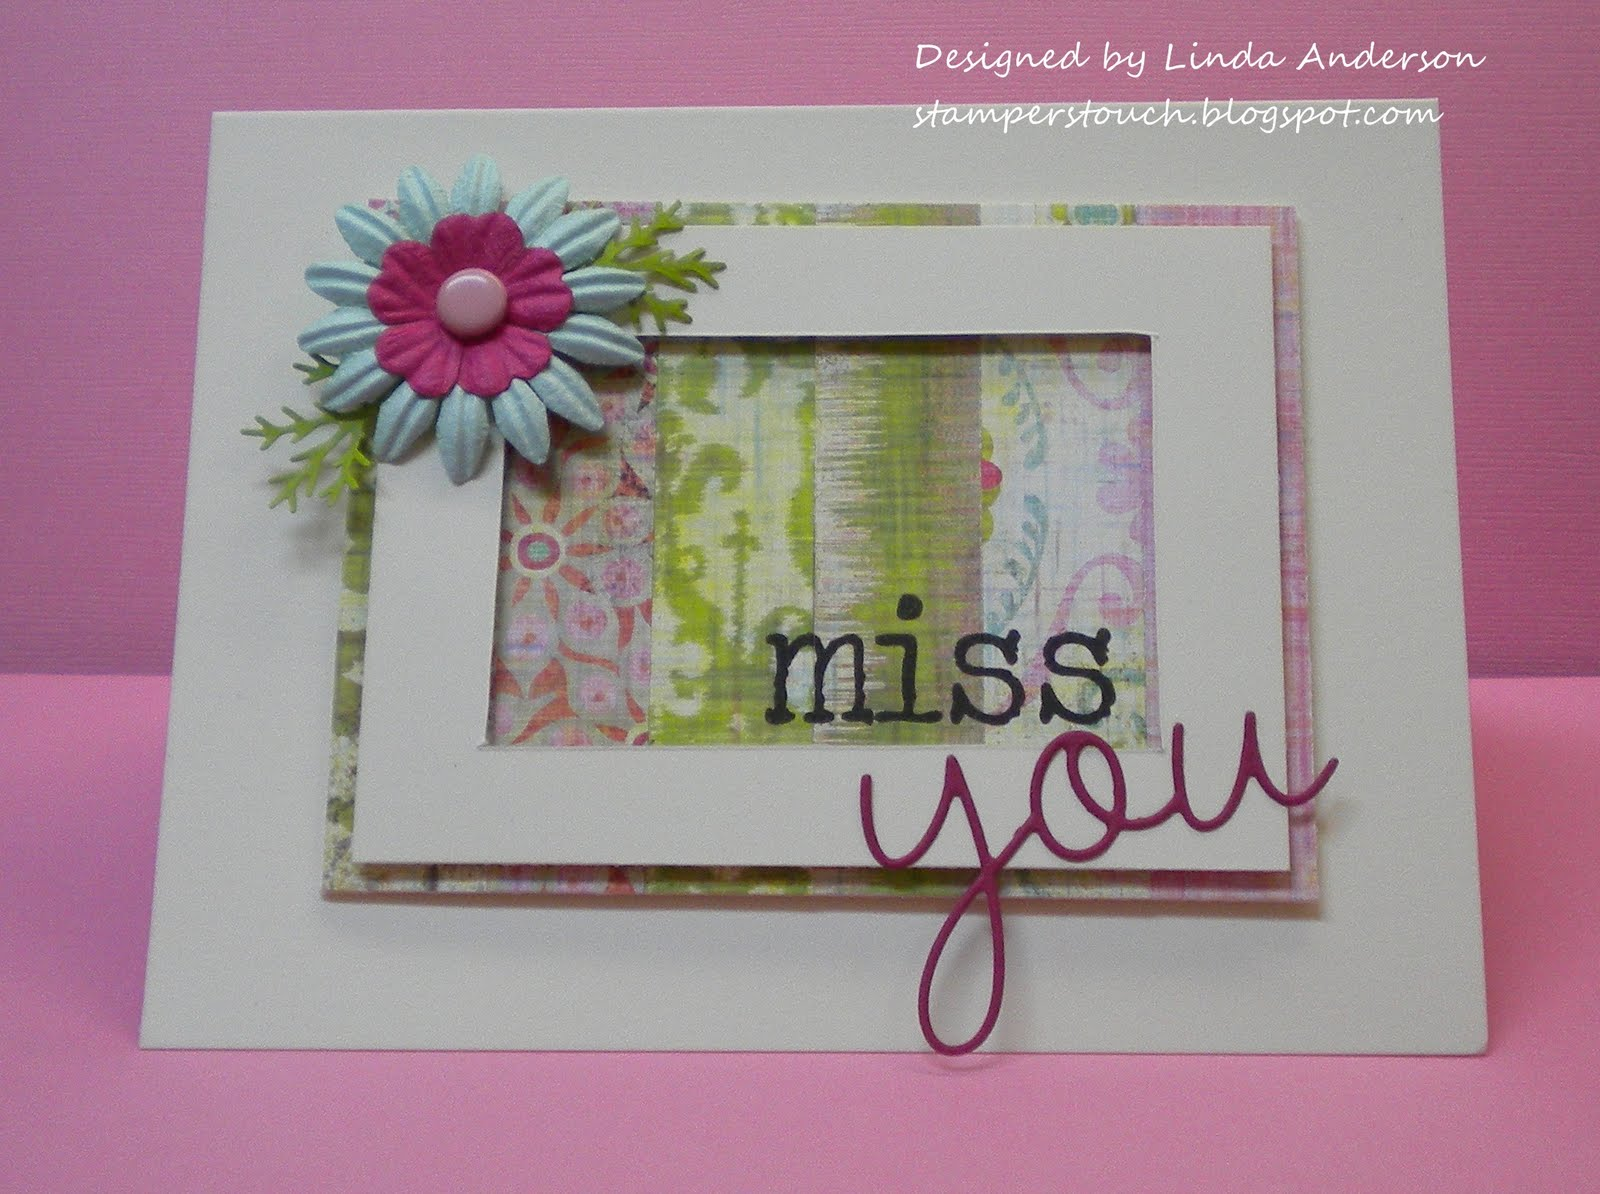 Owh Stars And Stamps Our Old Blog Miss You